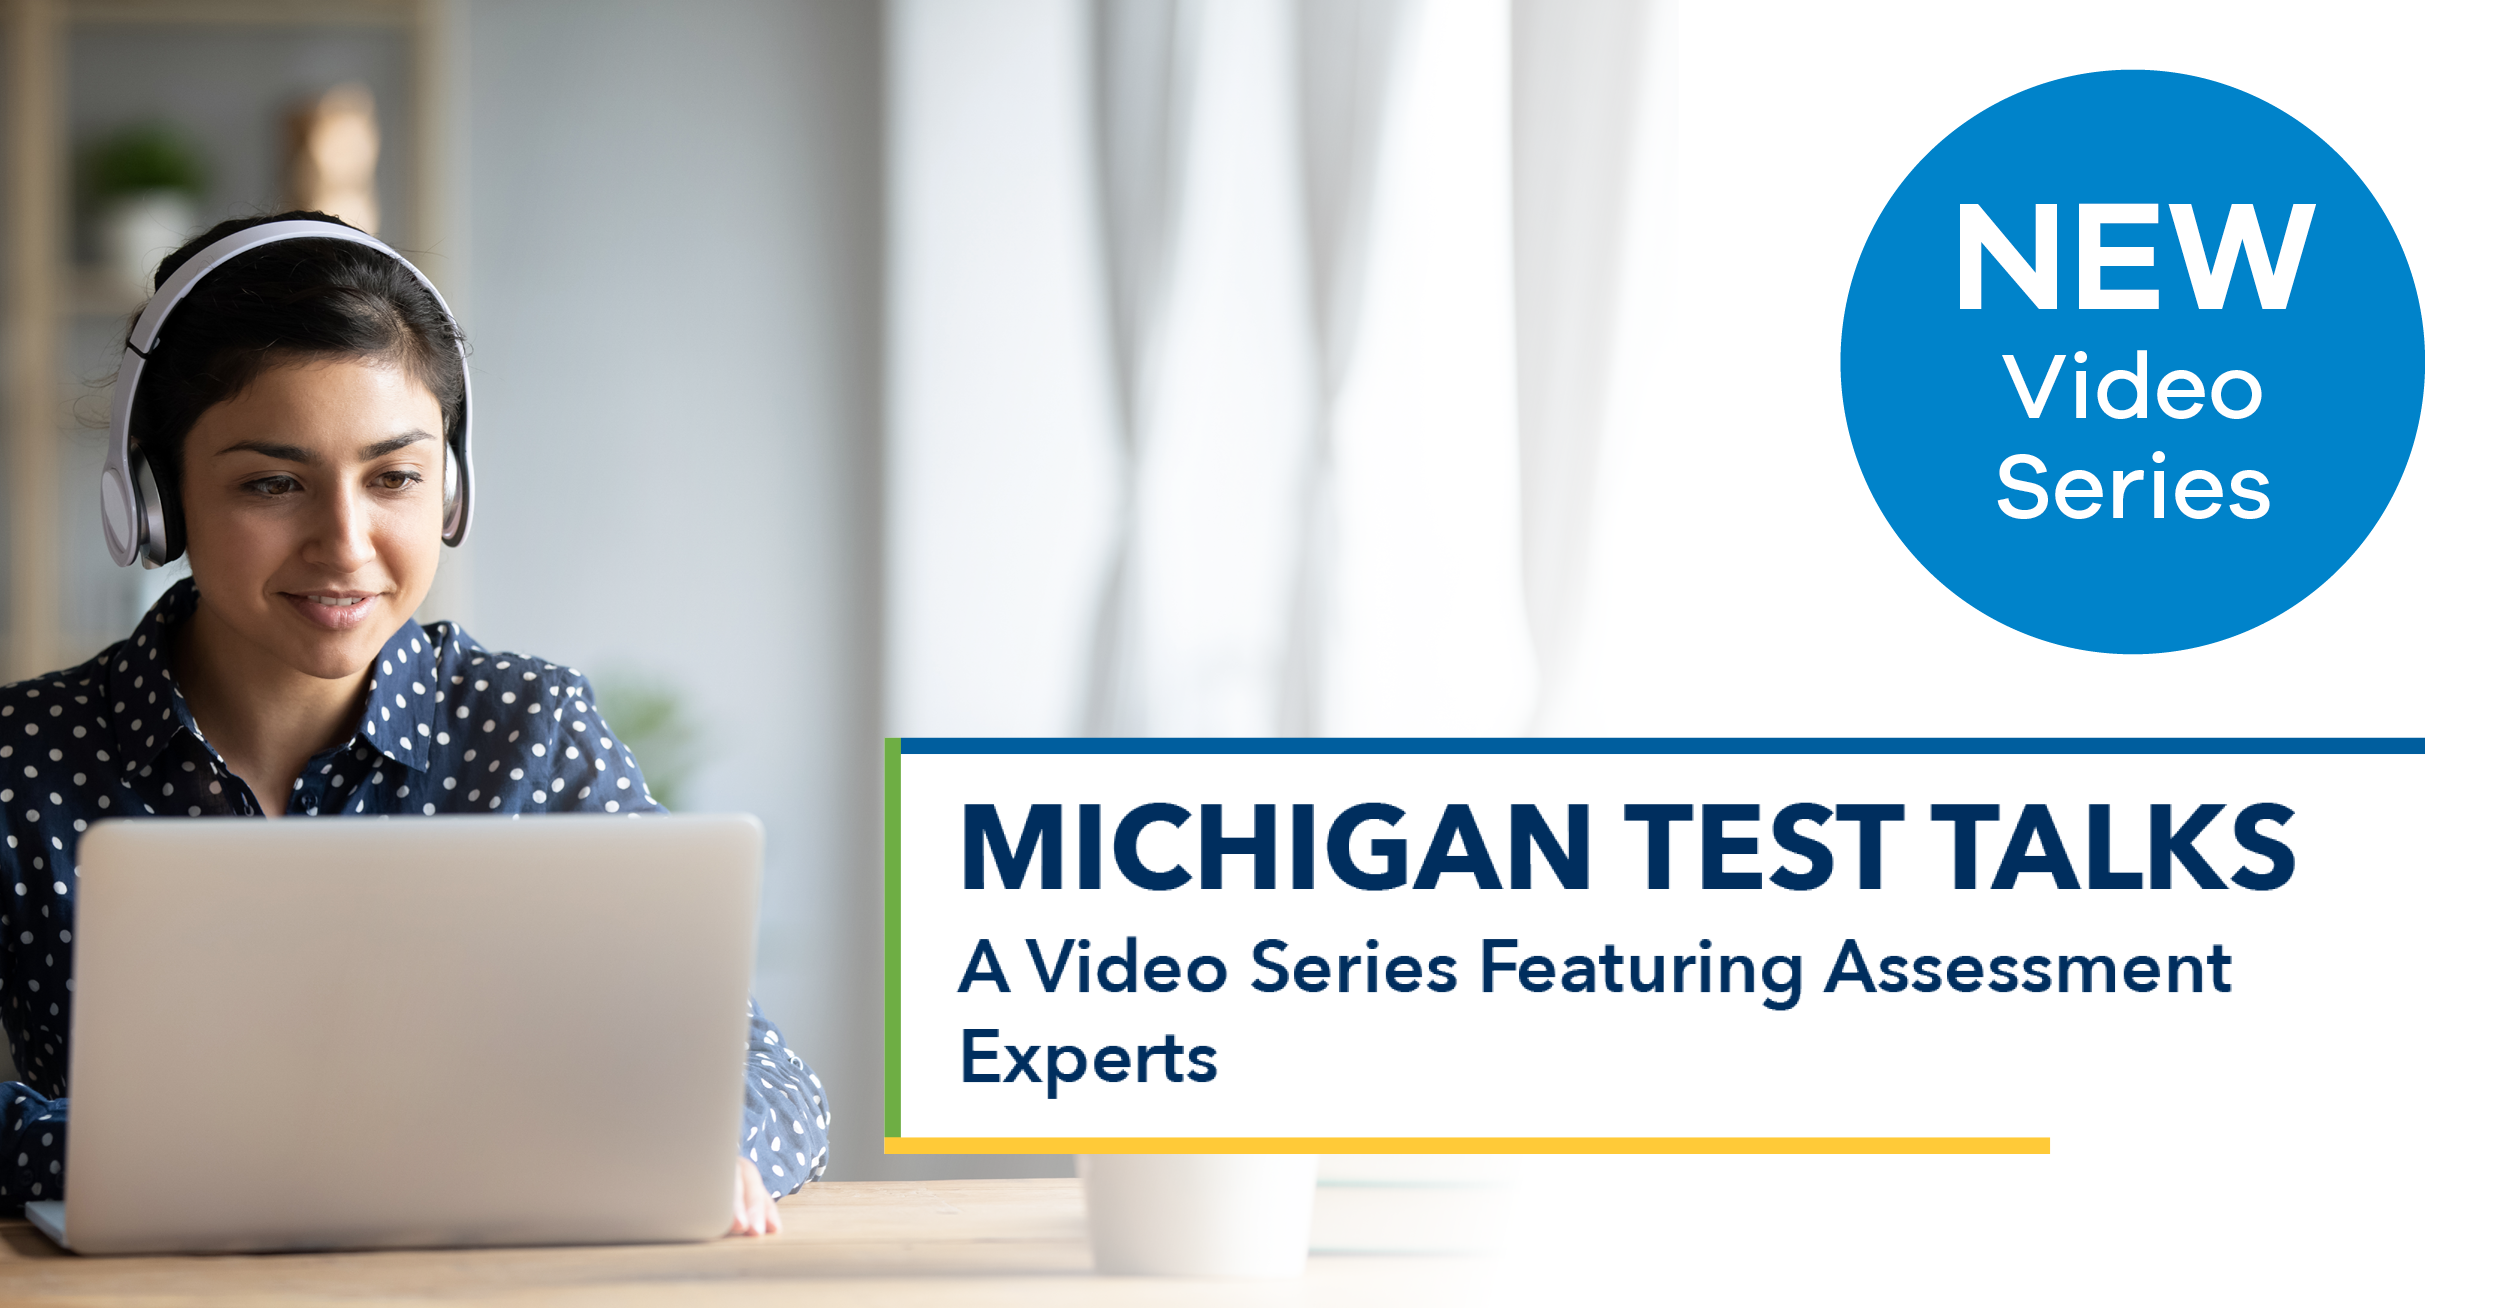 New Michigan Test Talk Series